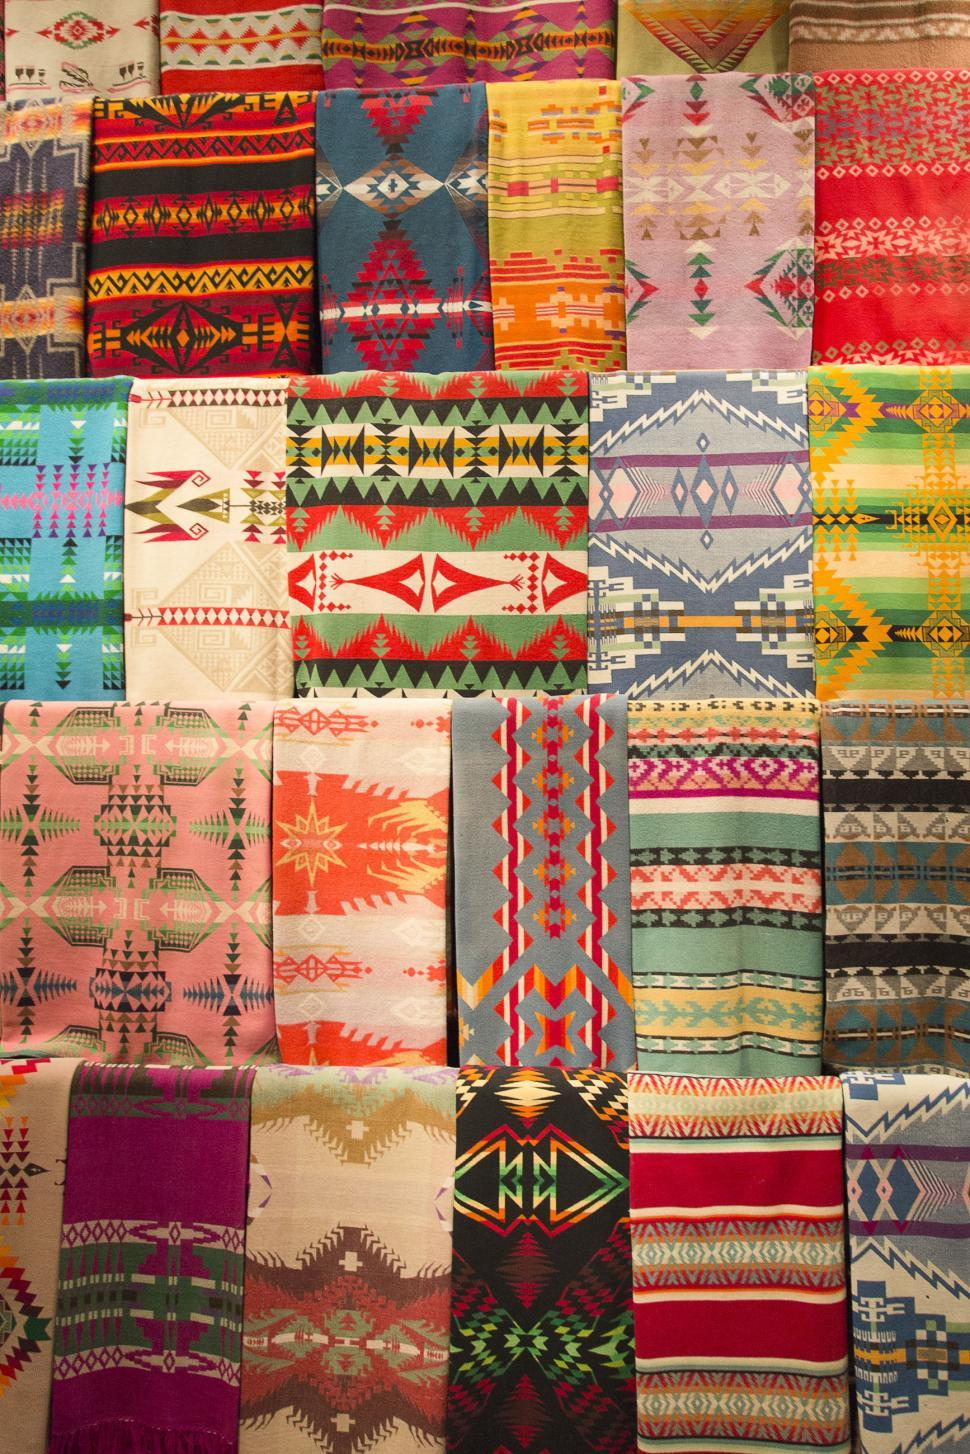 Download Free Stock HD Photo of Rugs Online